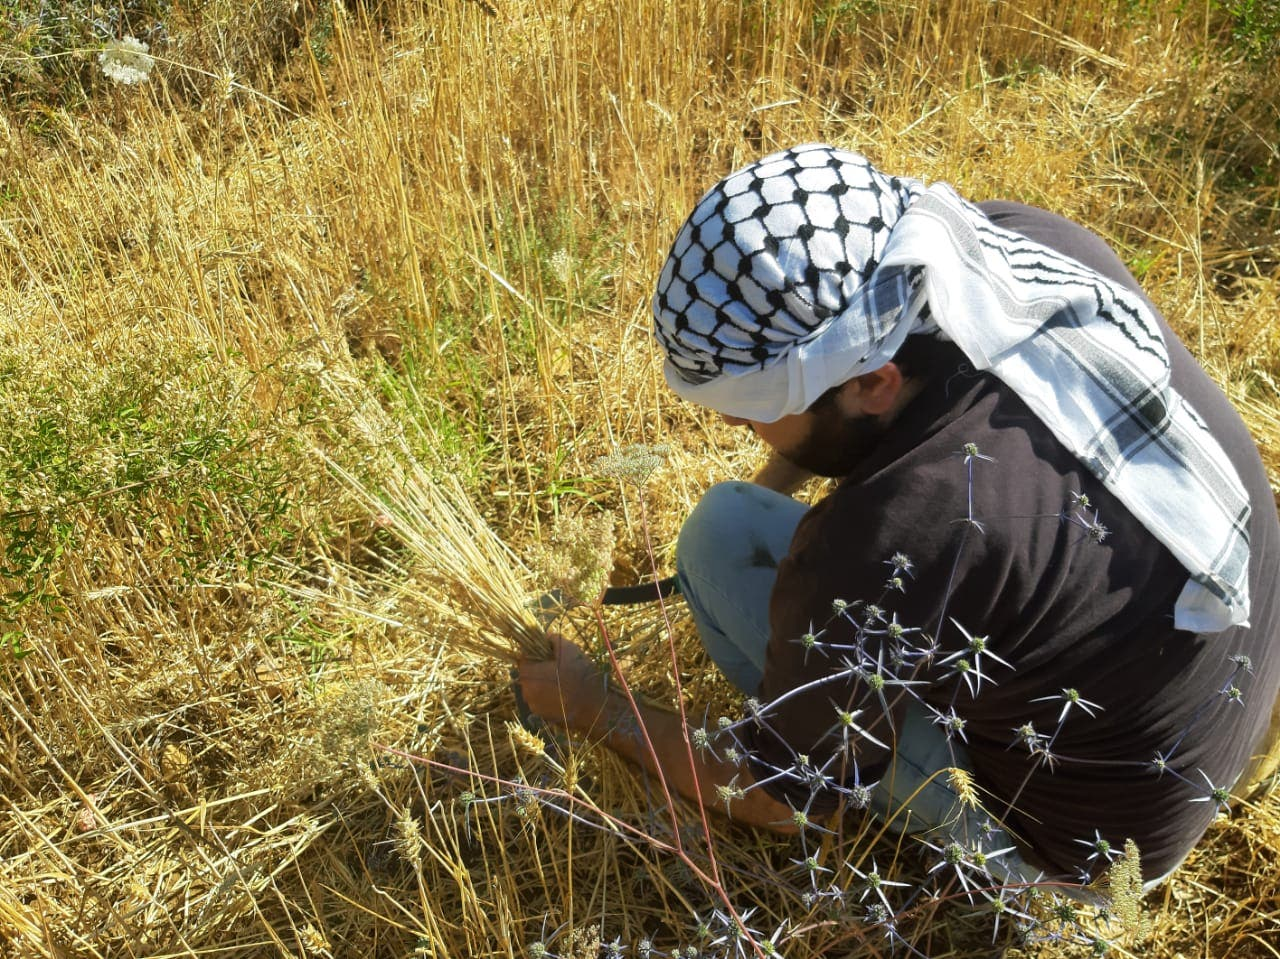 The Kon wheat harvest is one of a number of community farming initiatives that have sprung up amid growing food insecurity in Lebanon. (Abby Sewell)